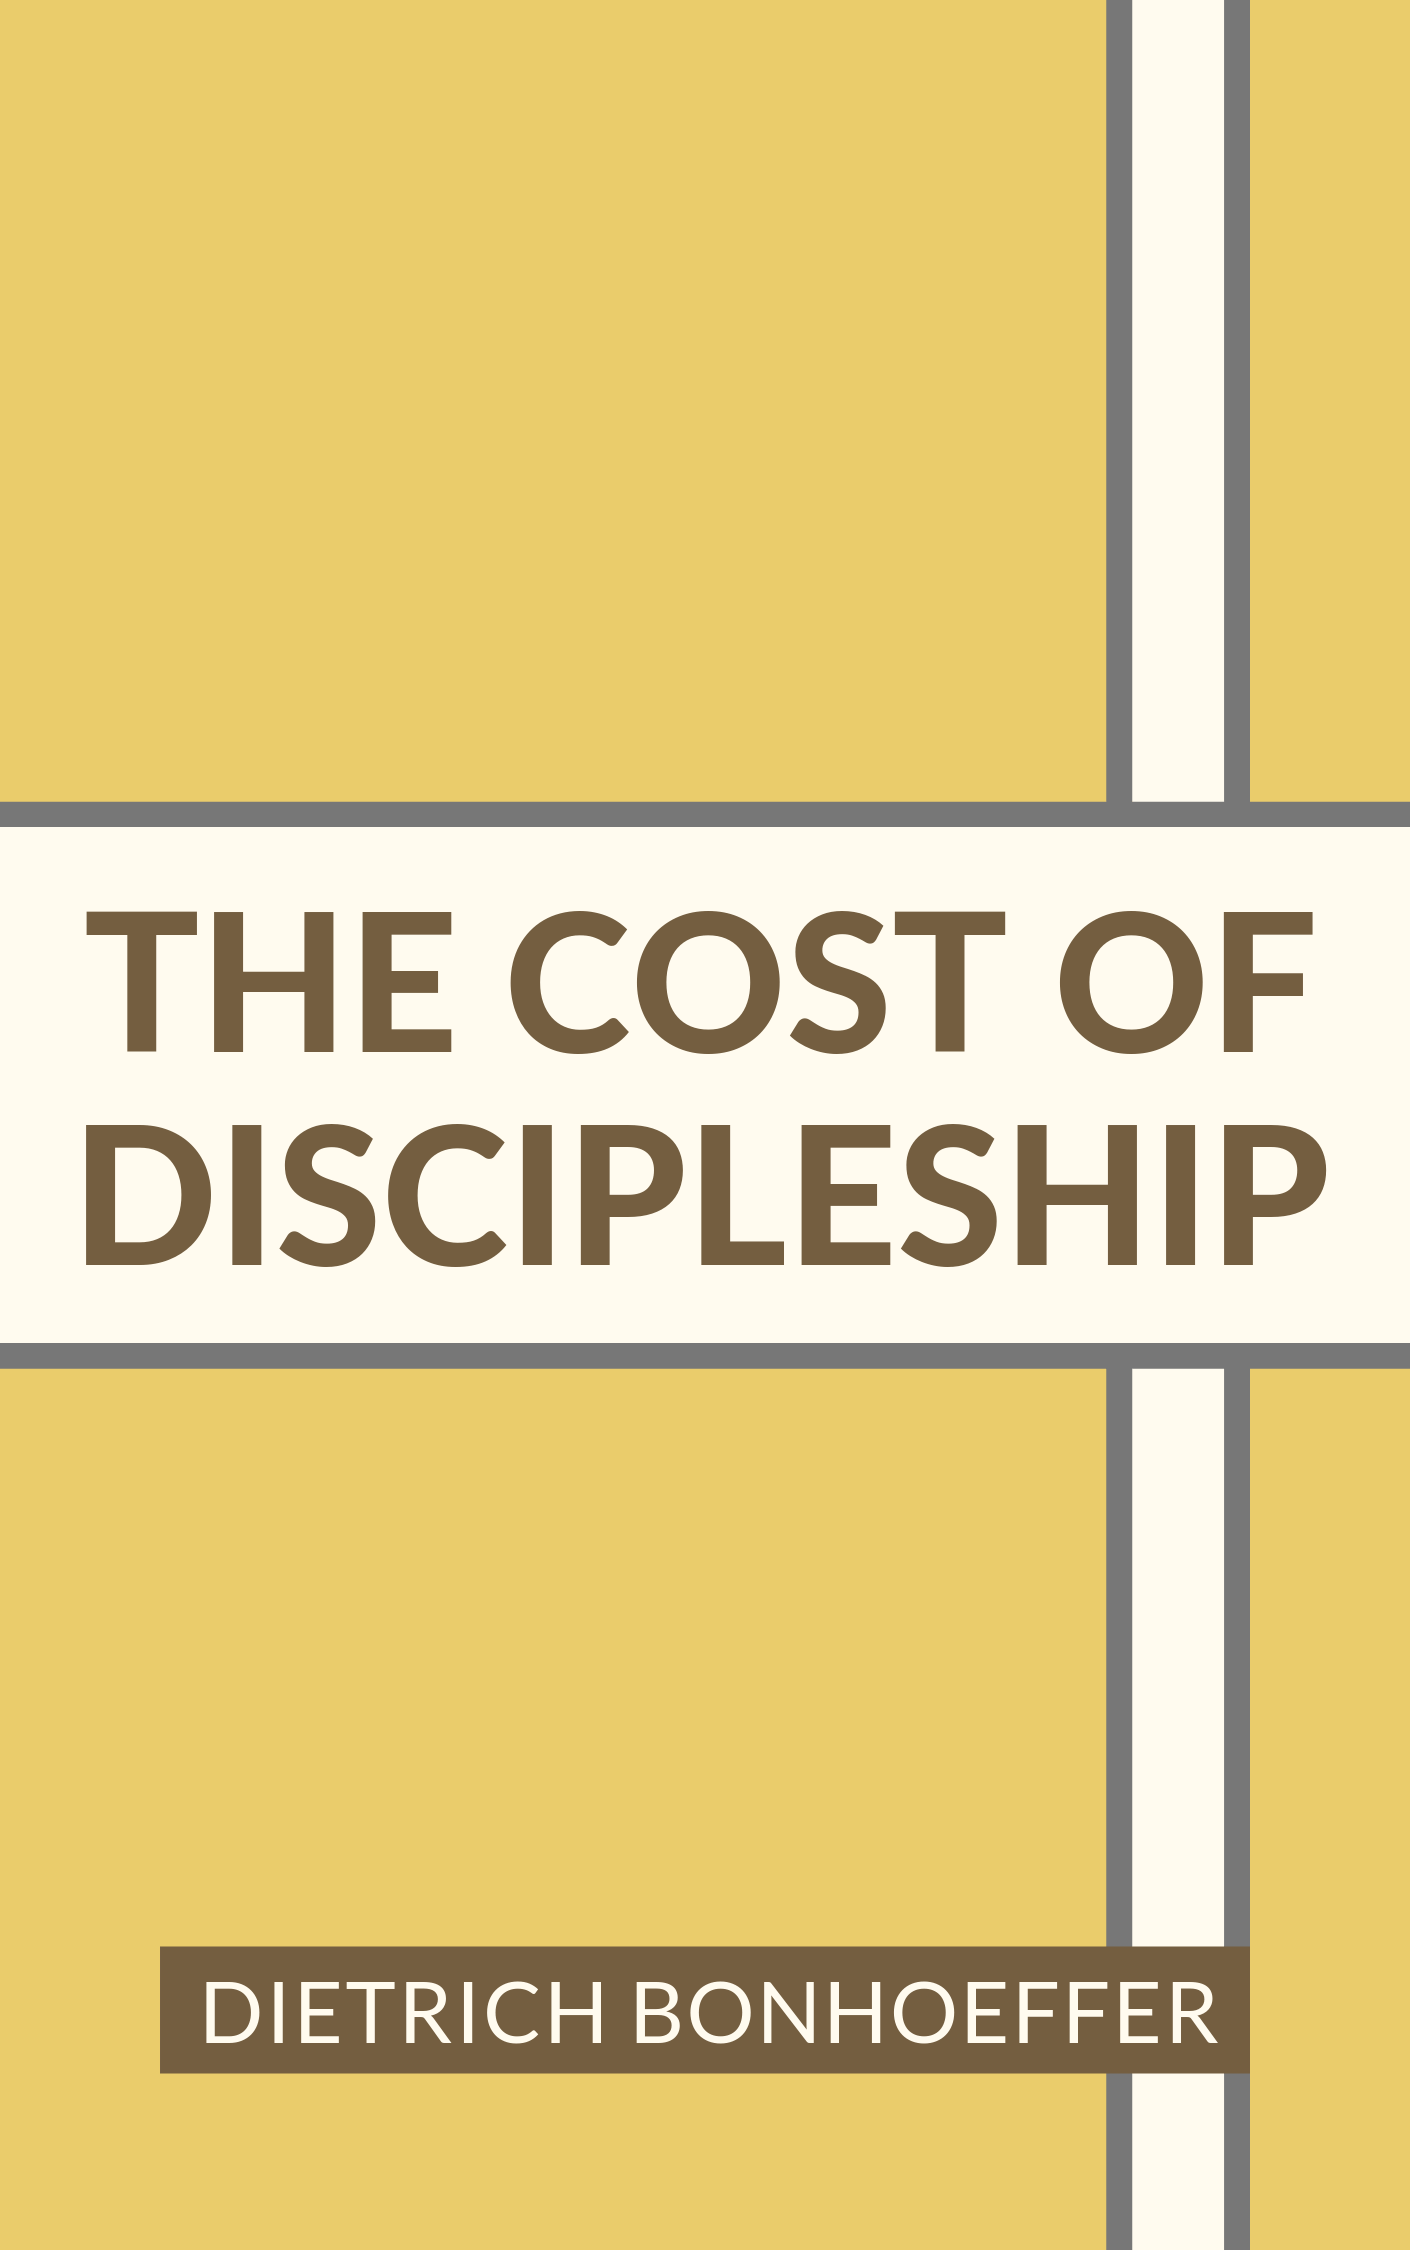 Book Summary of The Cost of Discipleship by Dietrich Bonhoeffer